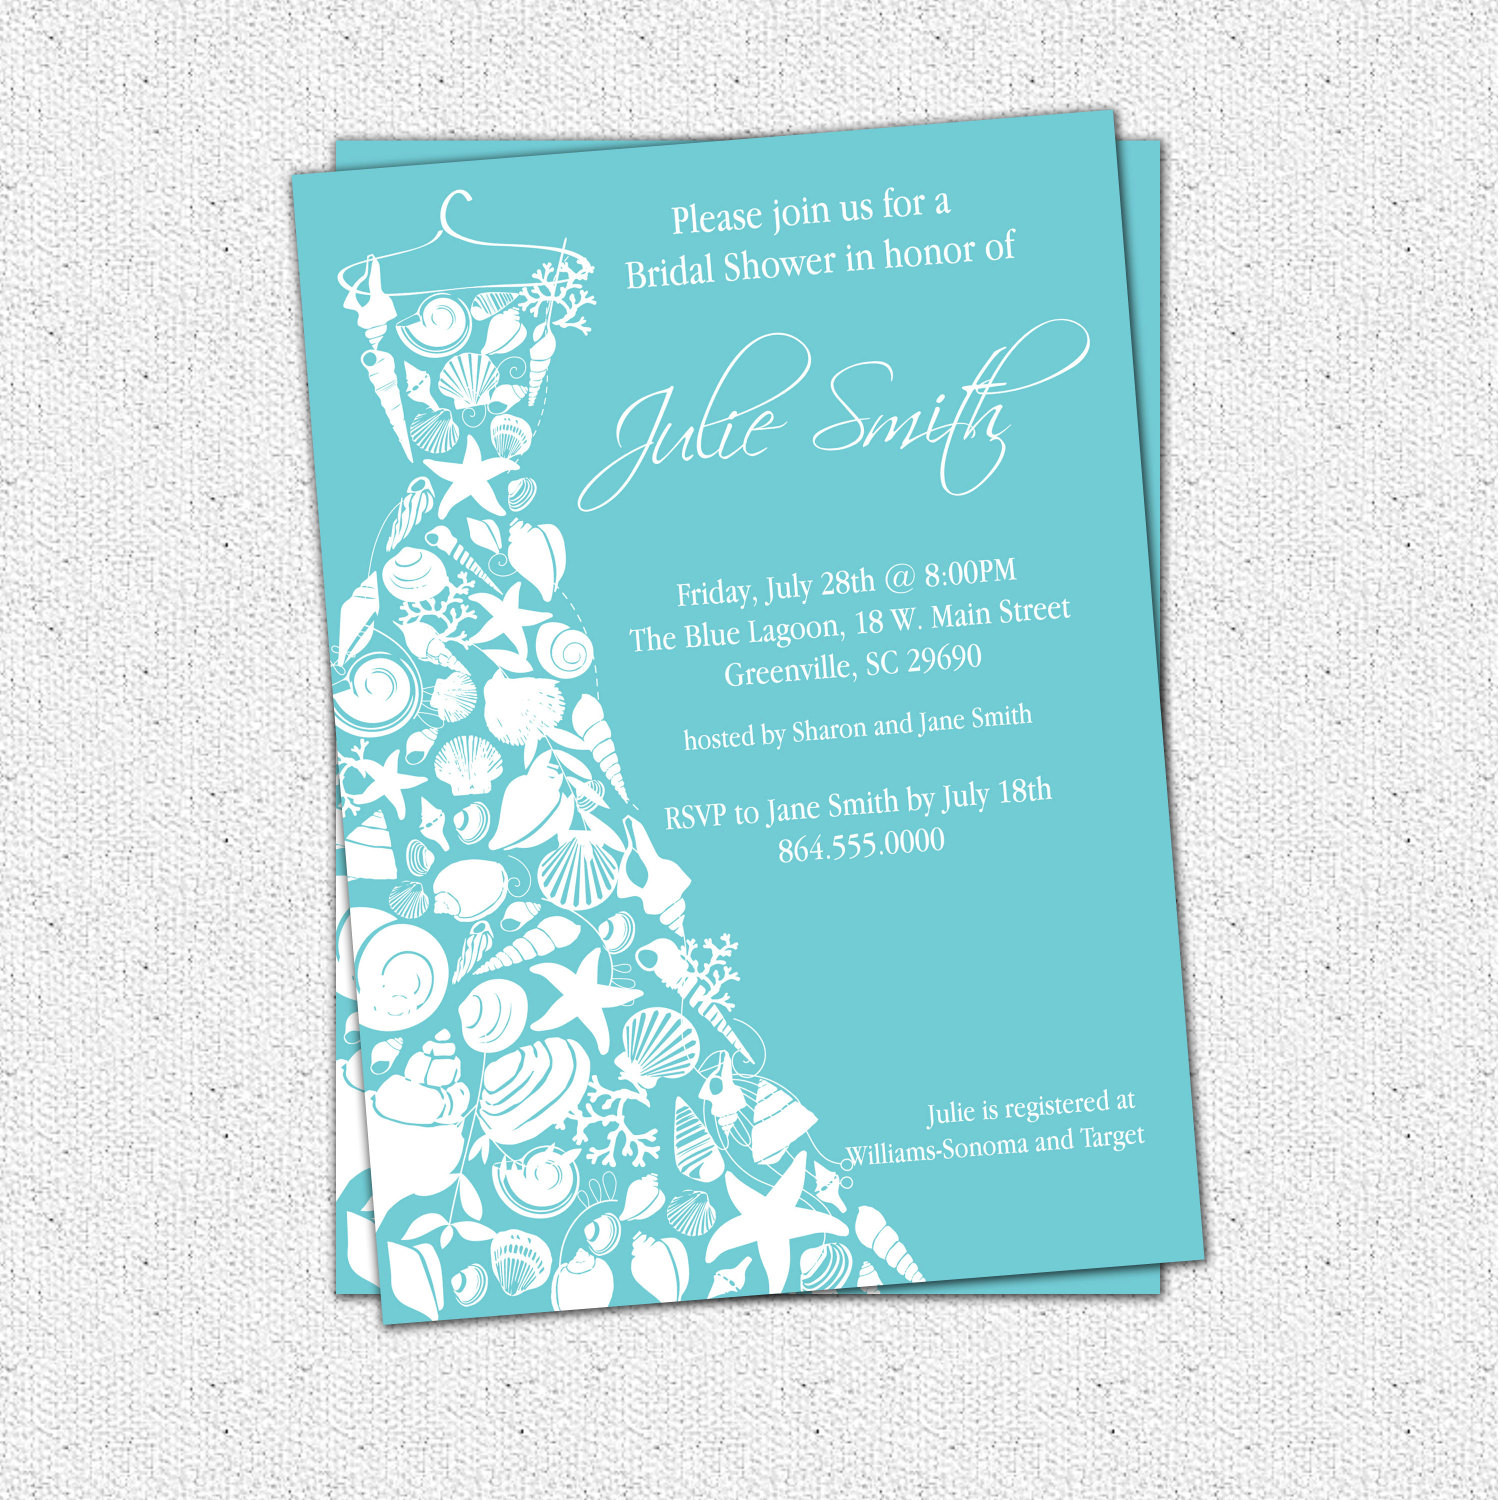 shower business of awesome flutterbug invitations template design baby invitation elegant nealon bridal